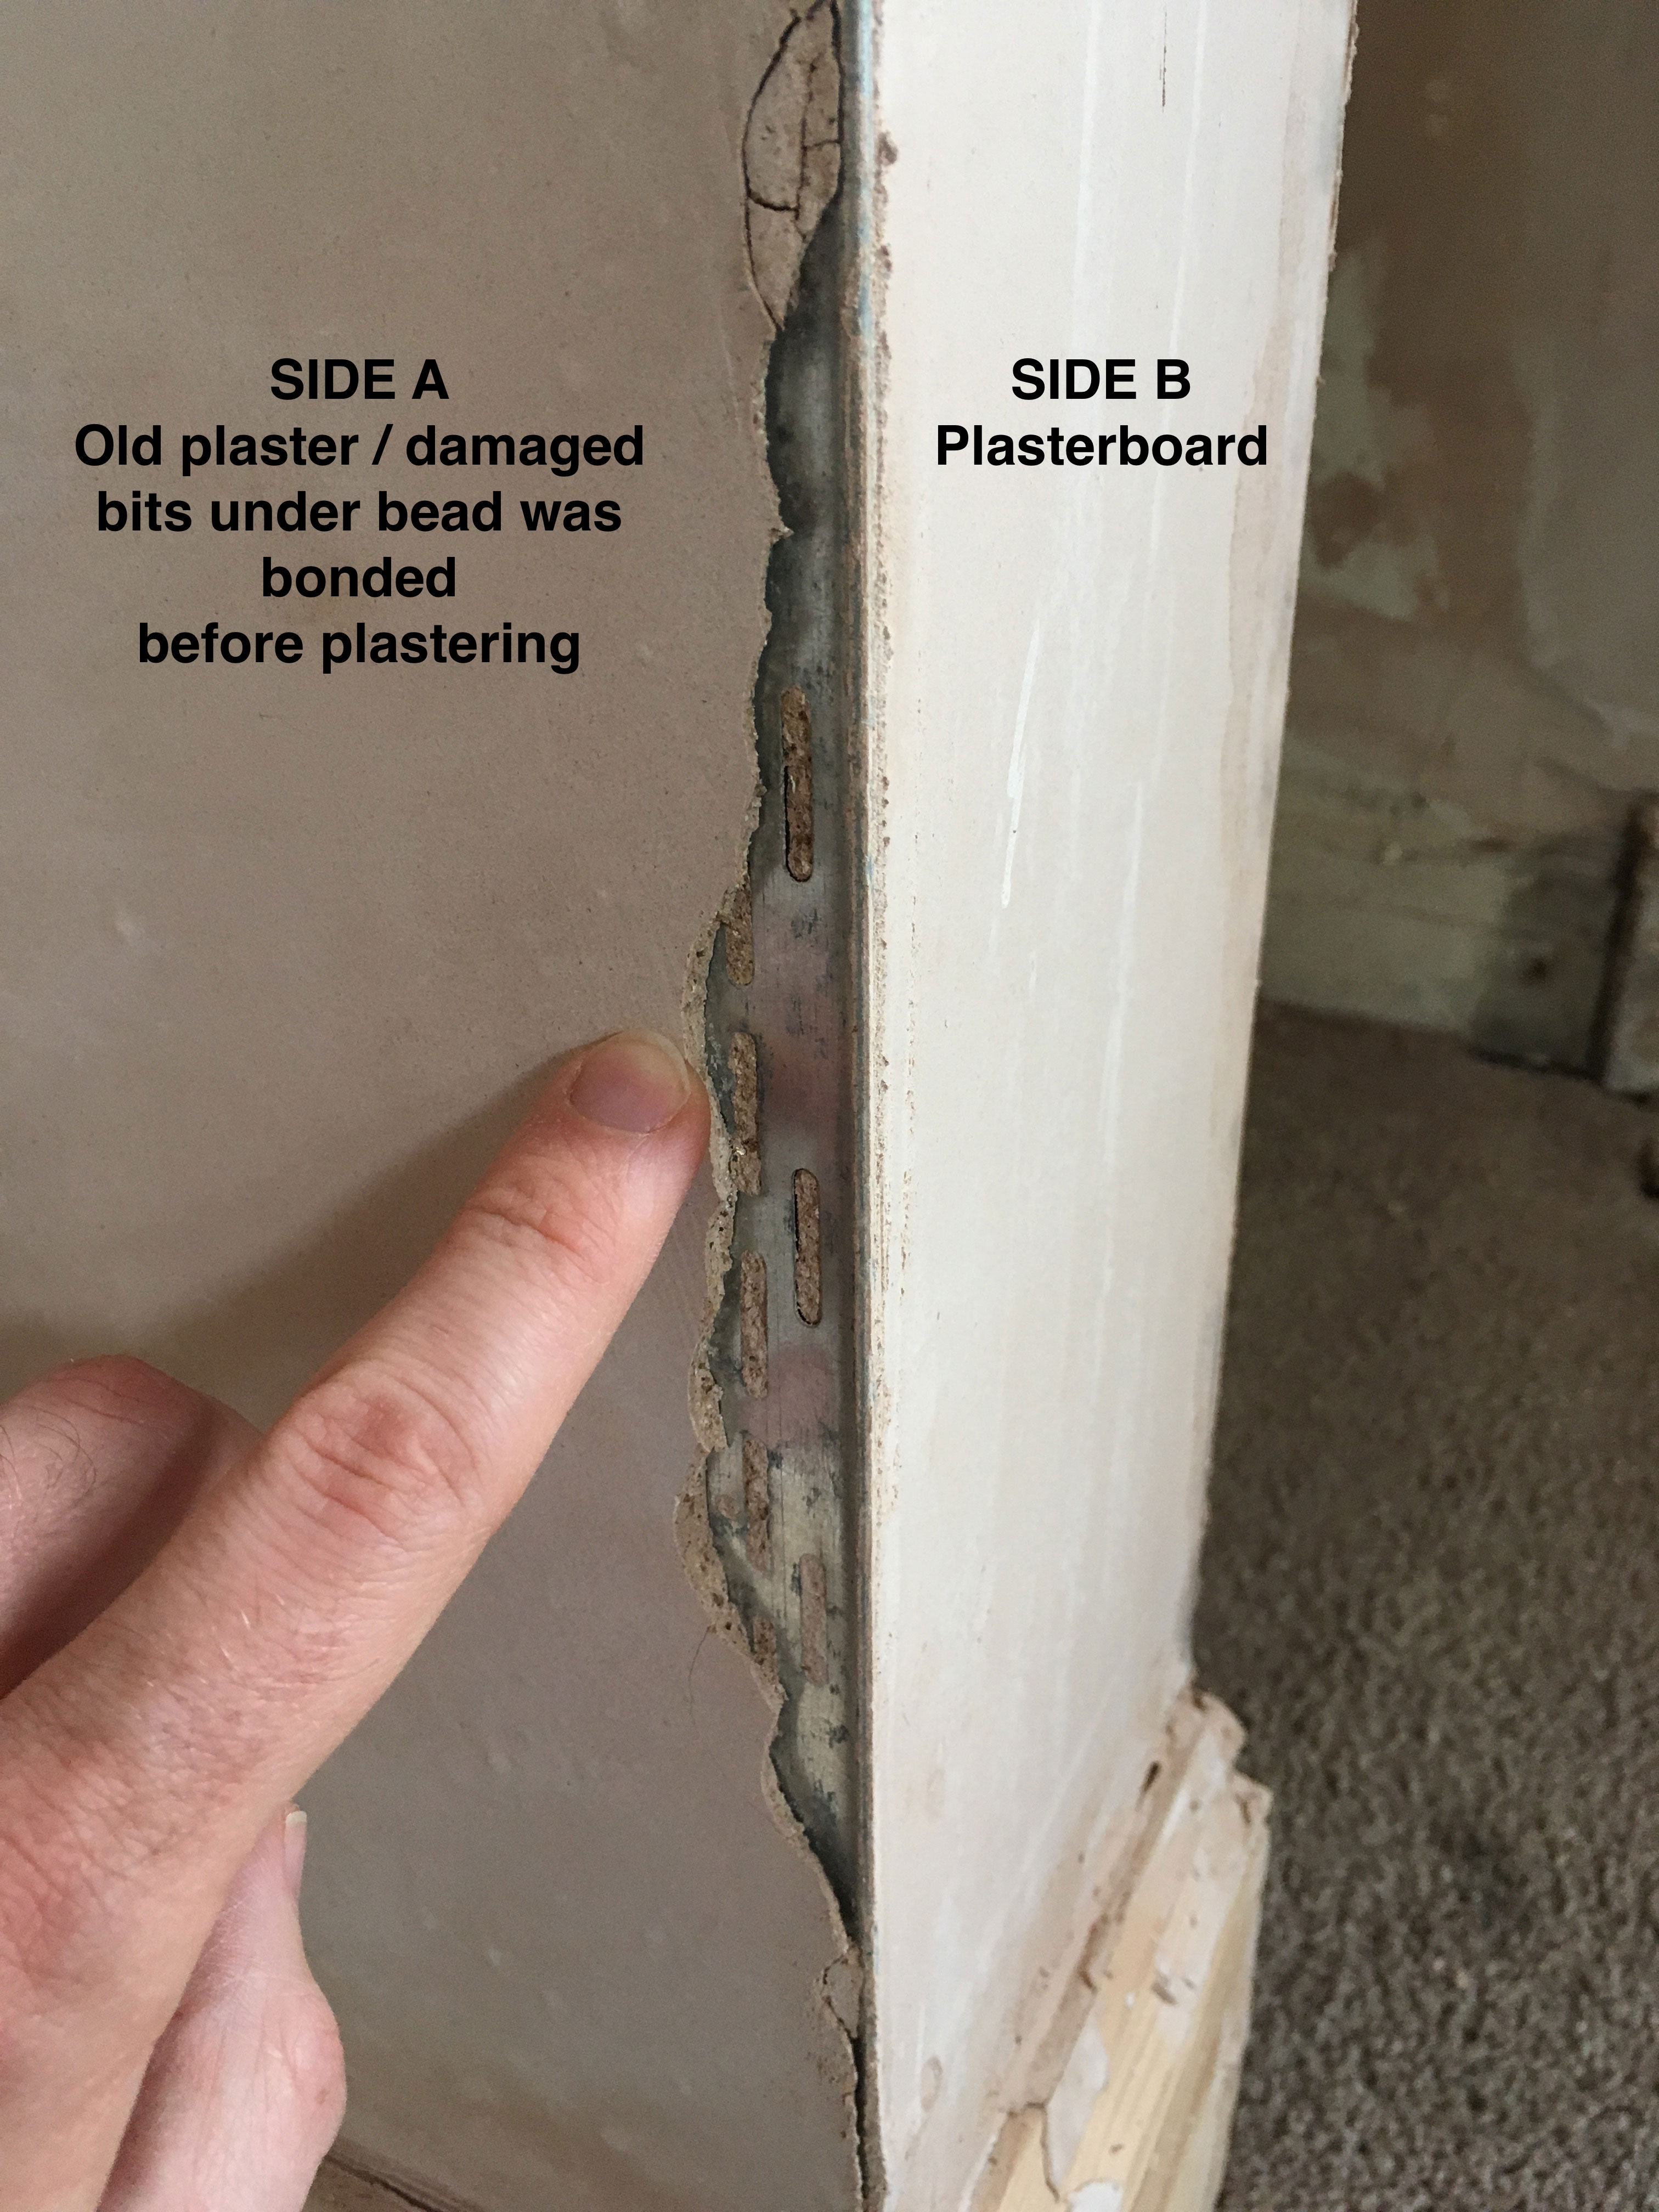 Plaster coming away from angle bead? | The Original Plasterers Forum